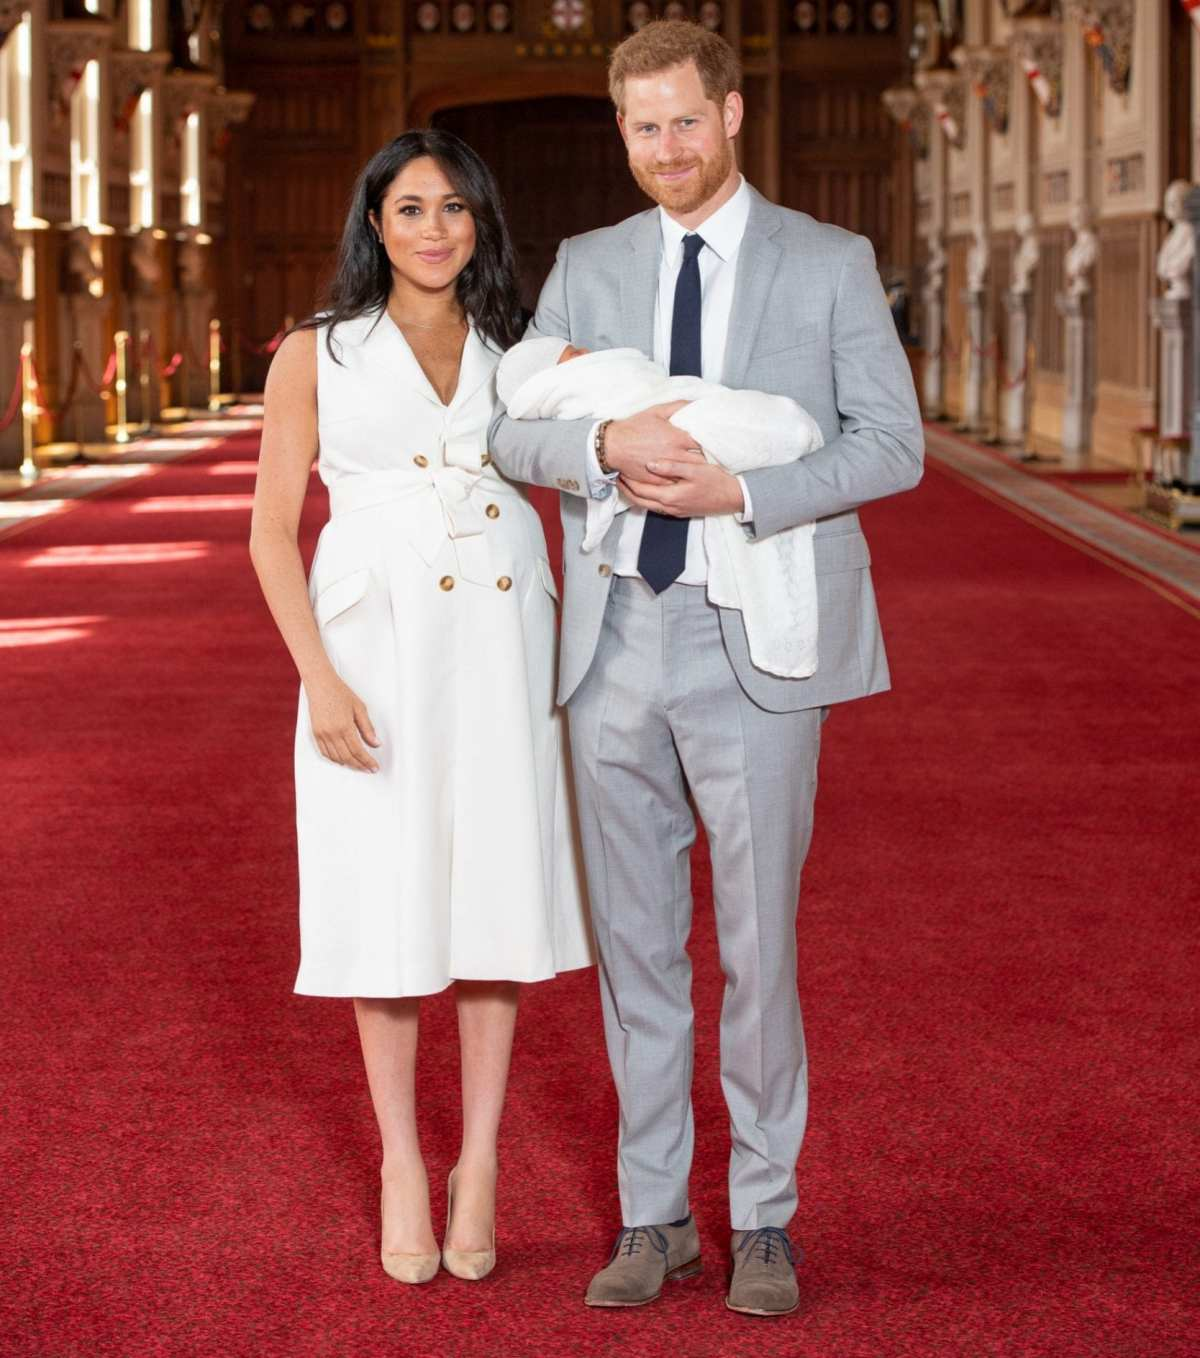 In May 2019, Harry and Meghan introduced their newborn son